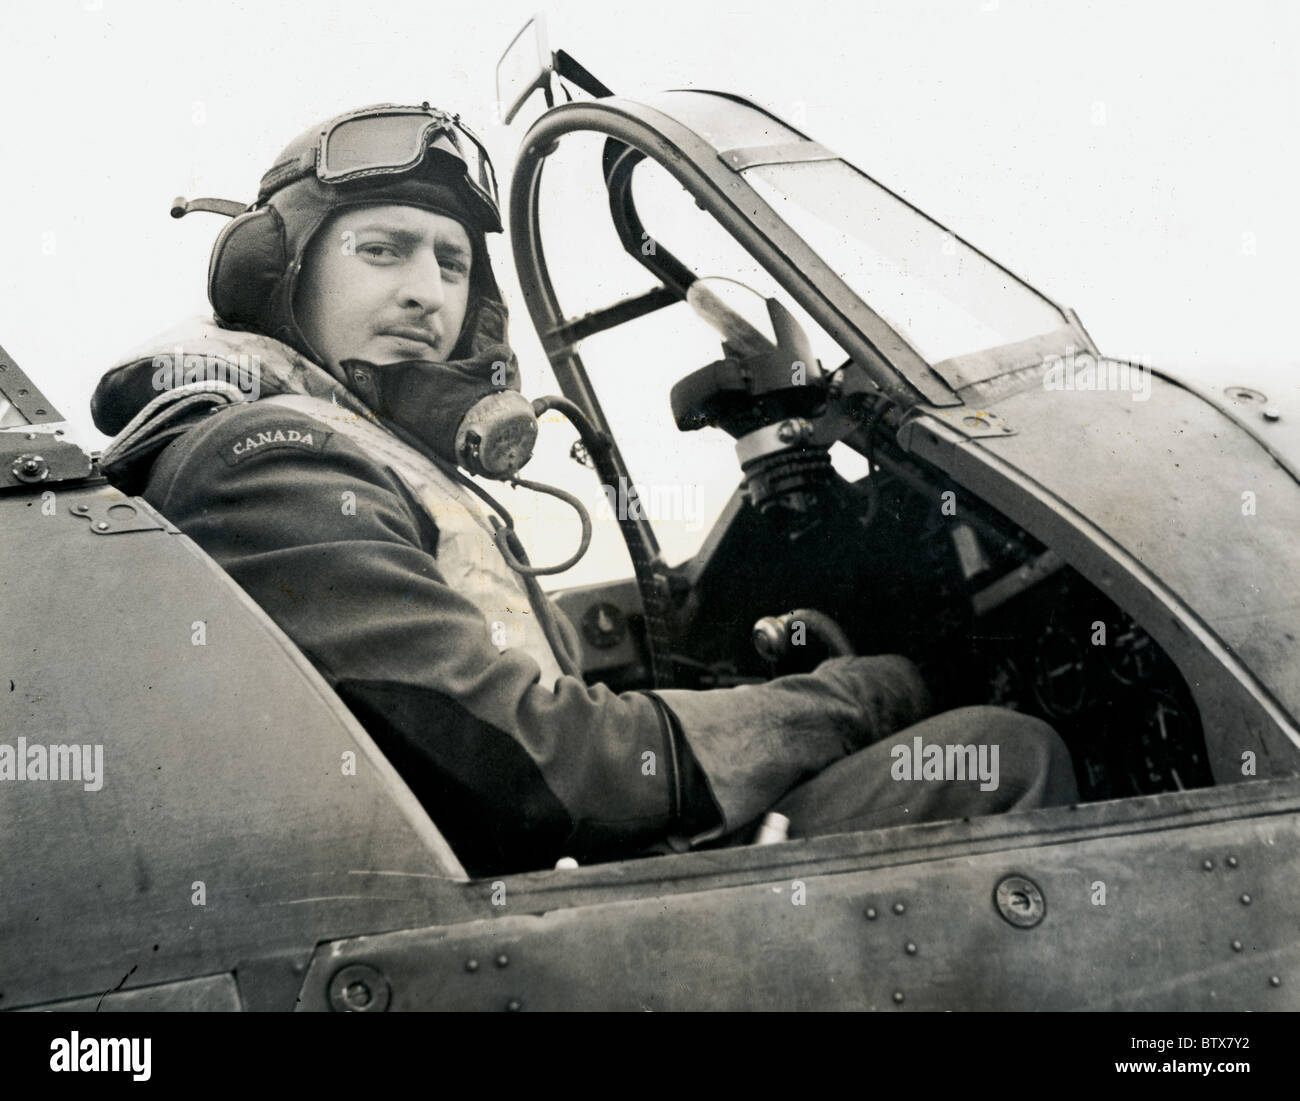 No.1 Royal Canadian Air Force Squadron Officer from Regina serving with RAF Fighter Command at controls of his aircraft - Stock Image